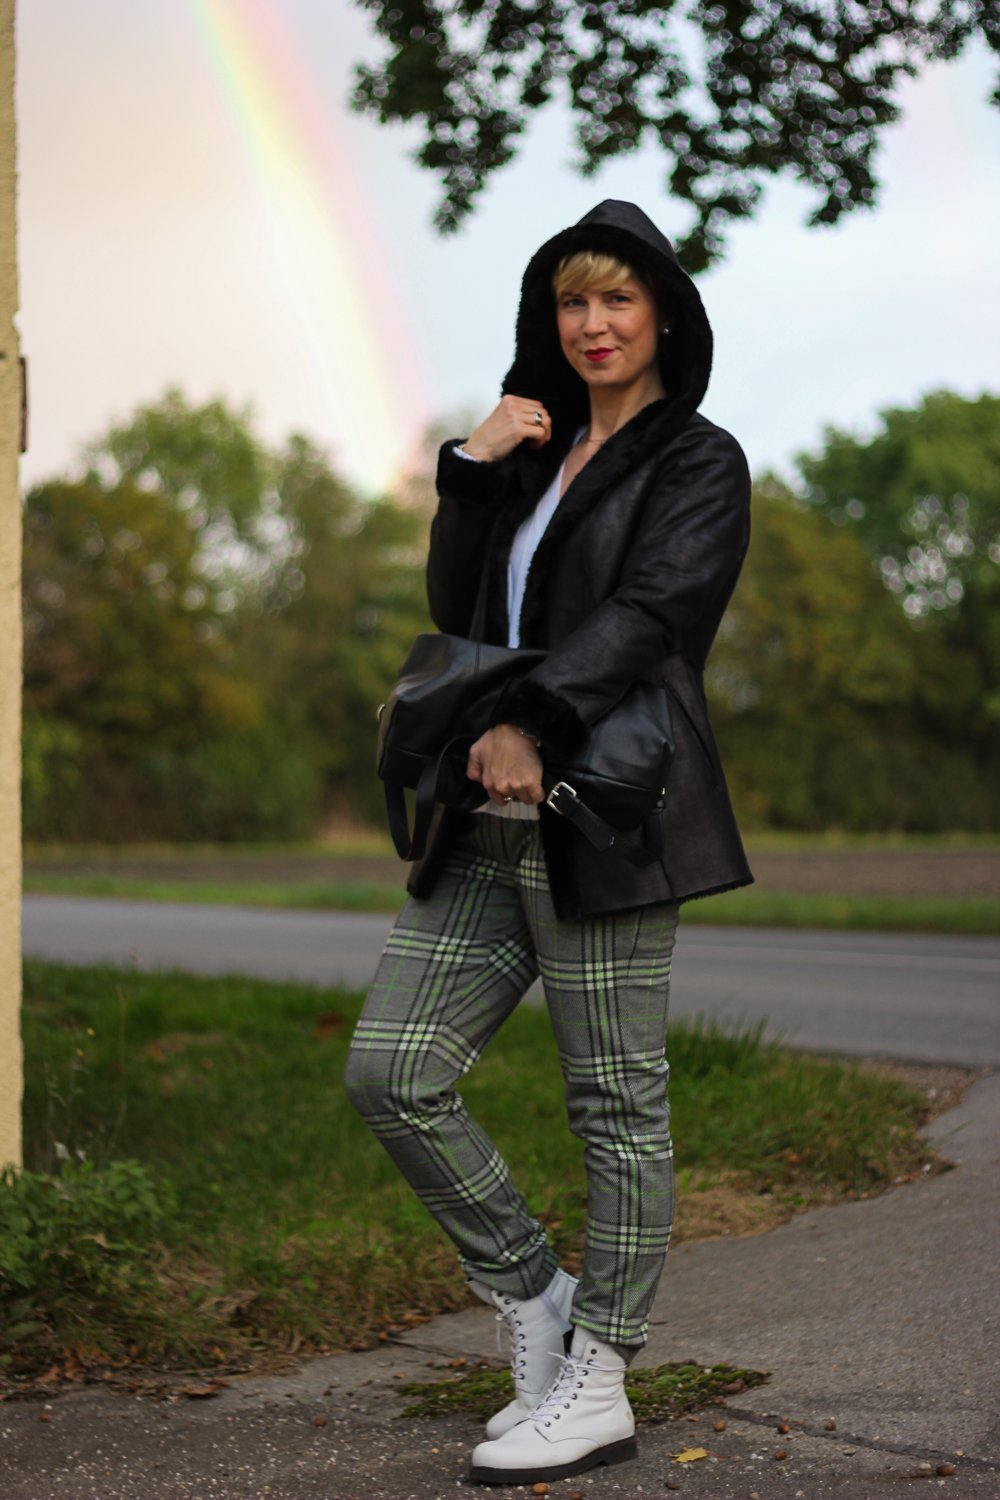 conny-doll-lifestyle: WENZ, Herbststyling, Fakelederjacke, Karohose, Boots, casual